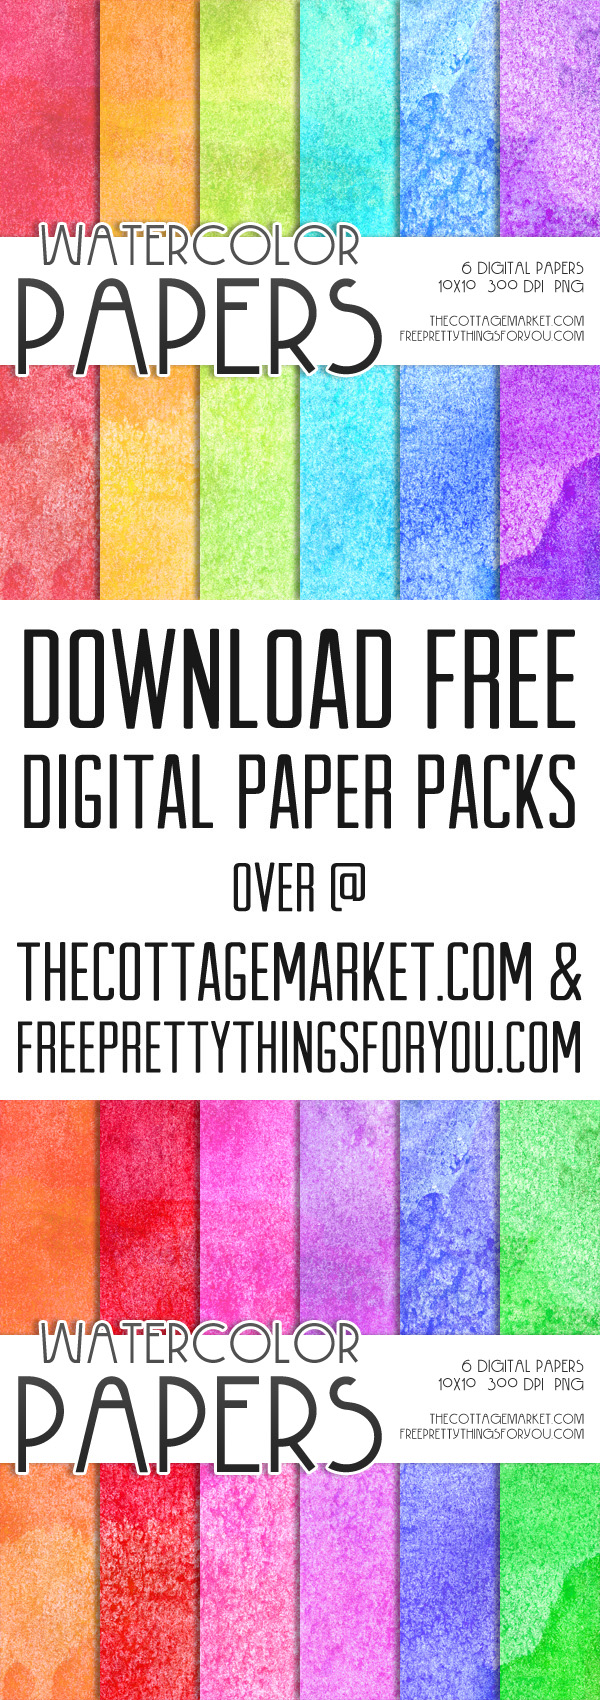 Free Download of Watercolor Scrapbooking Paper